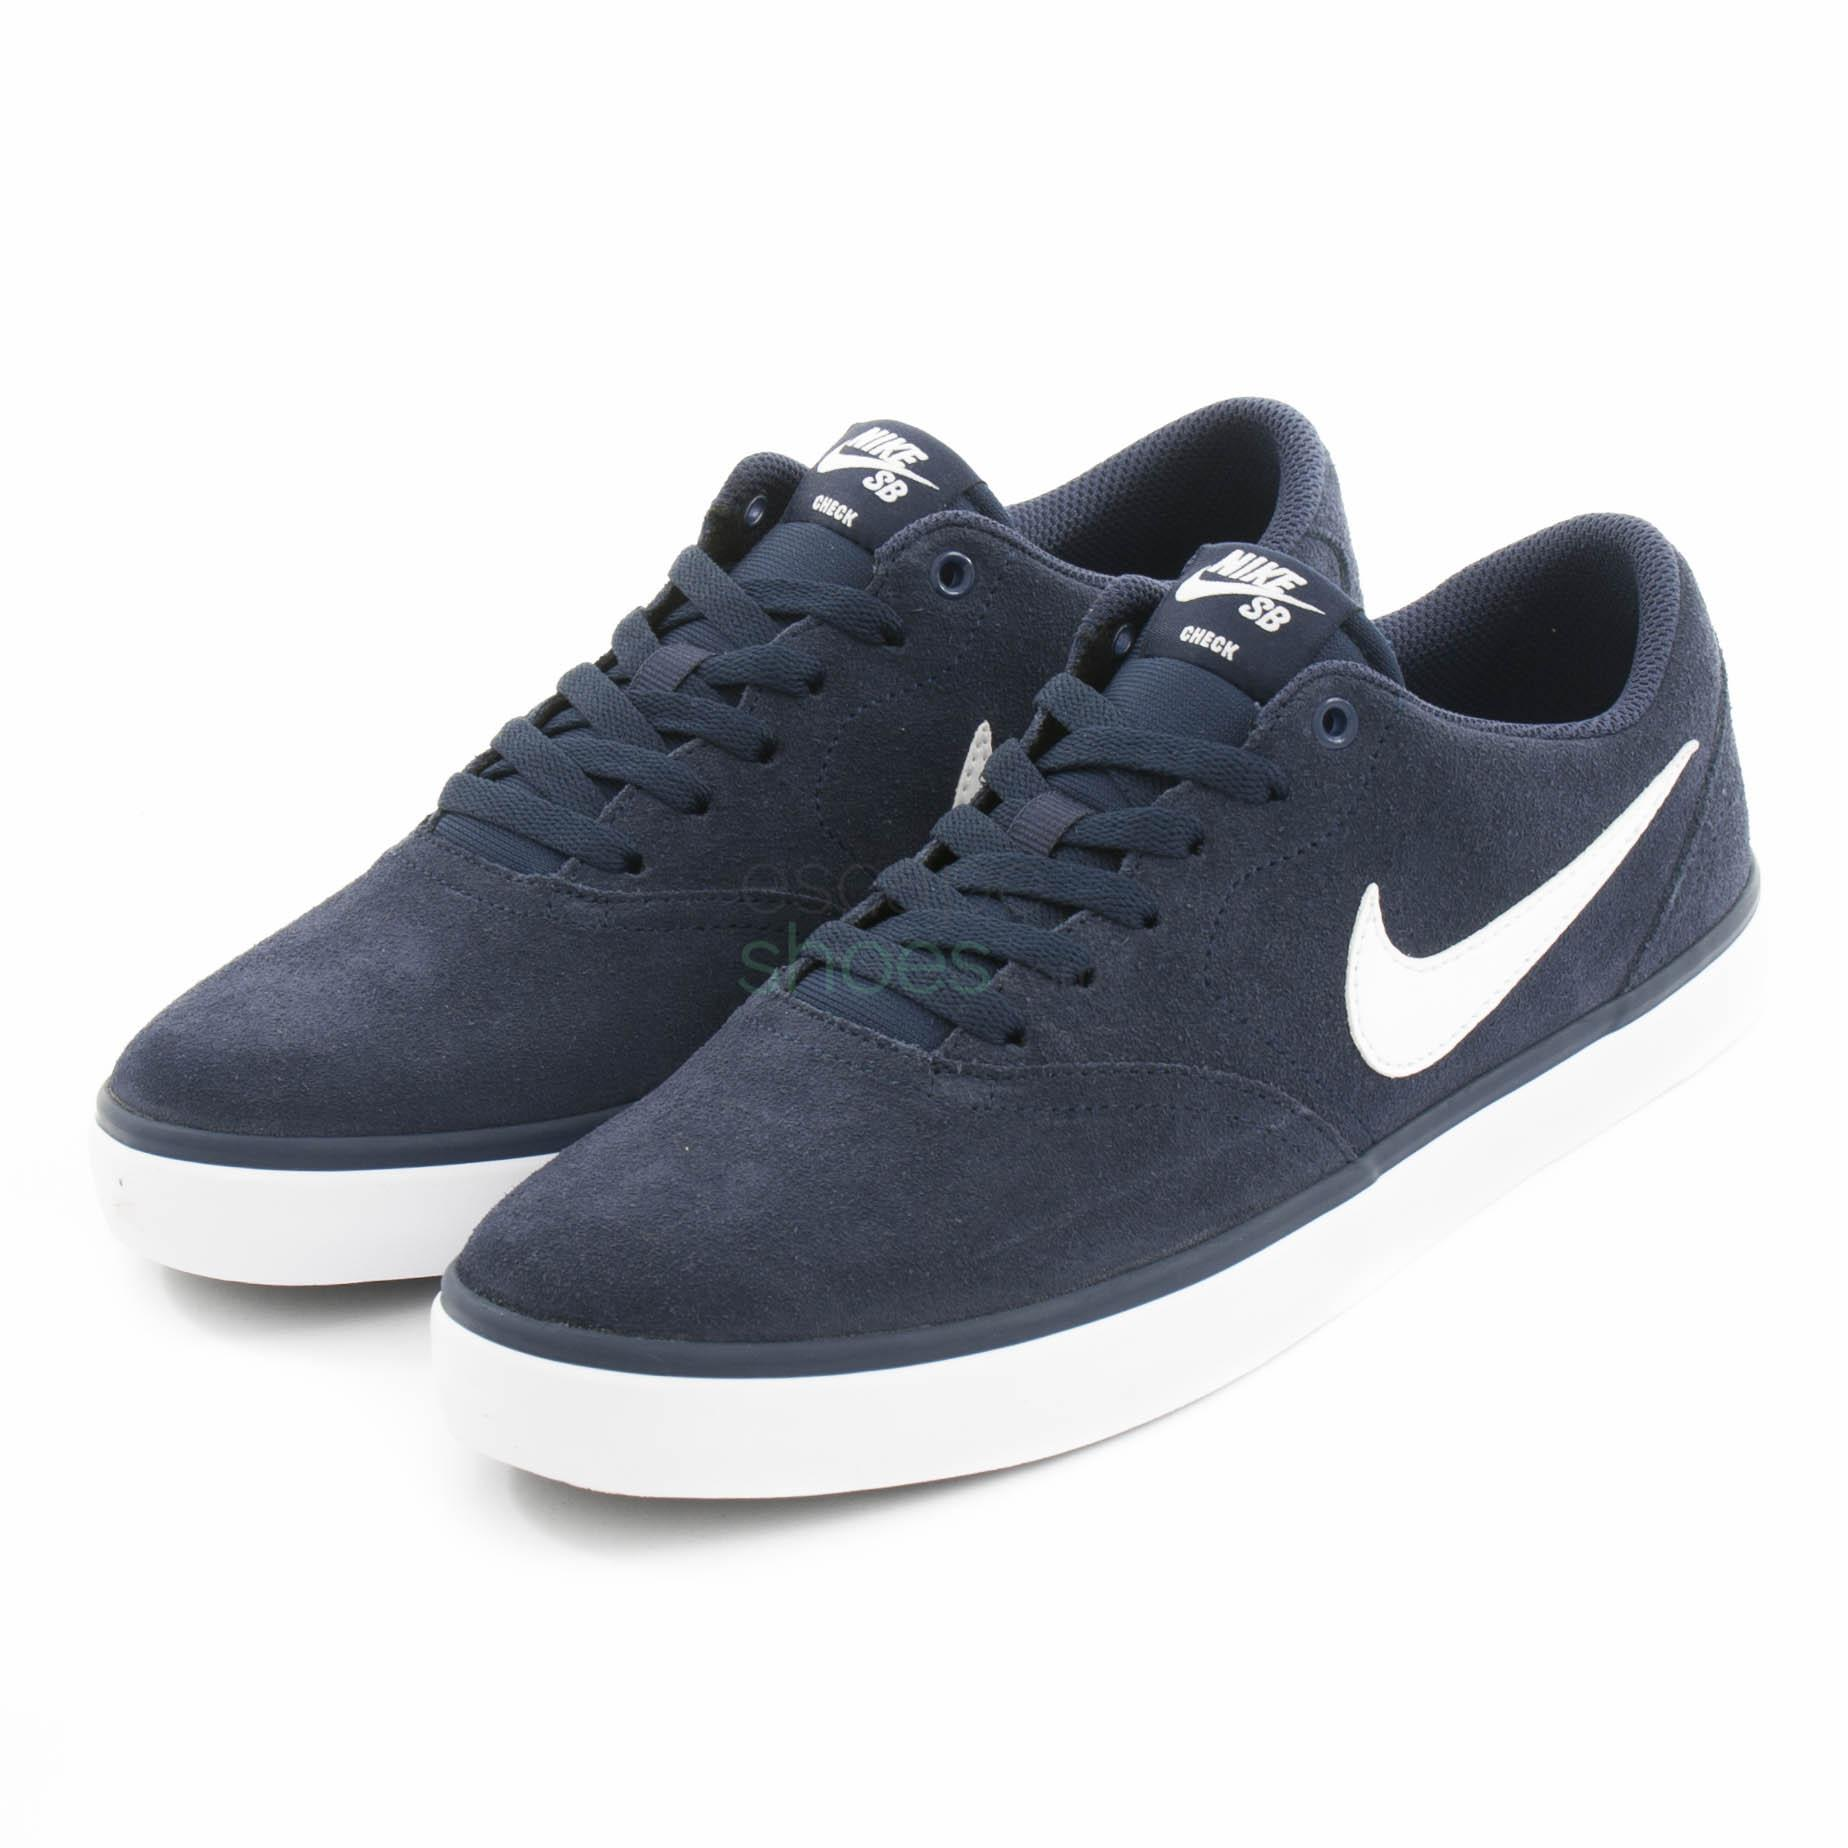 NIKE SB Check Solar Midnight Navy White 843895 400